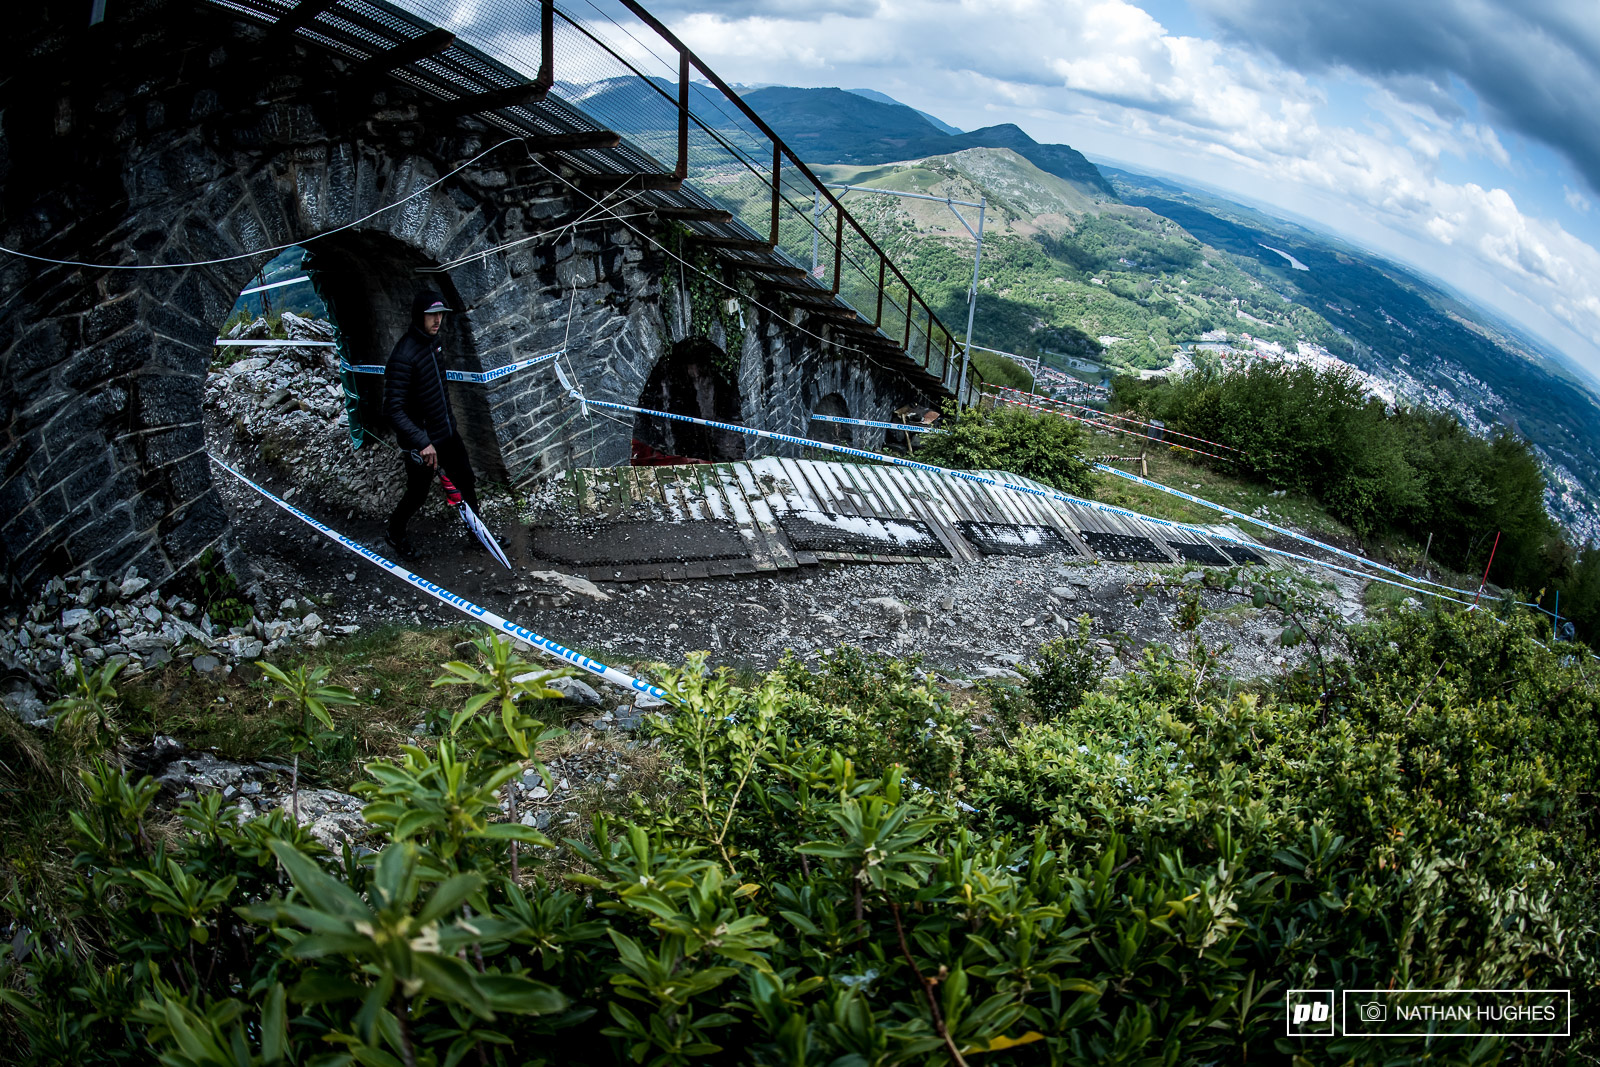 Gee Atherton strides forth under the troll bridge high above Lourdes.